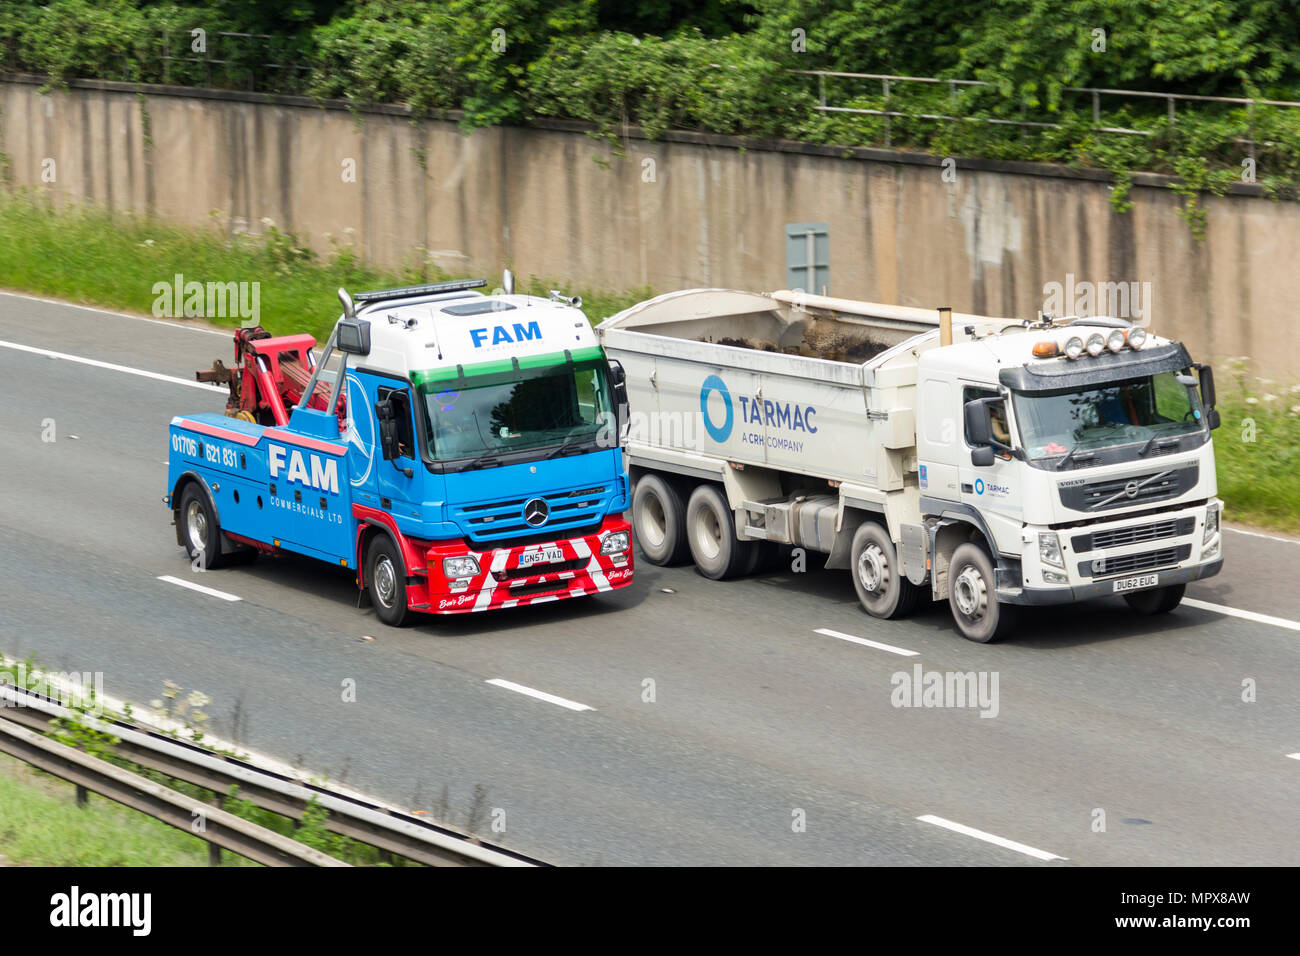 FAM commercial vehicle recovery breakdown truck passing a Tarmac branded Volvo FM410 tipper lorry on the M61 motorway near Farnworth. - Stock Image